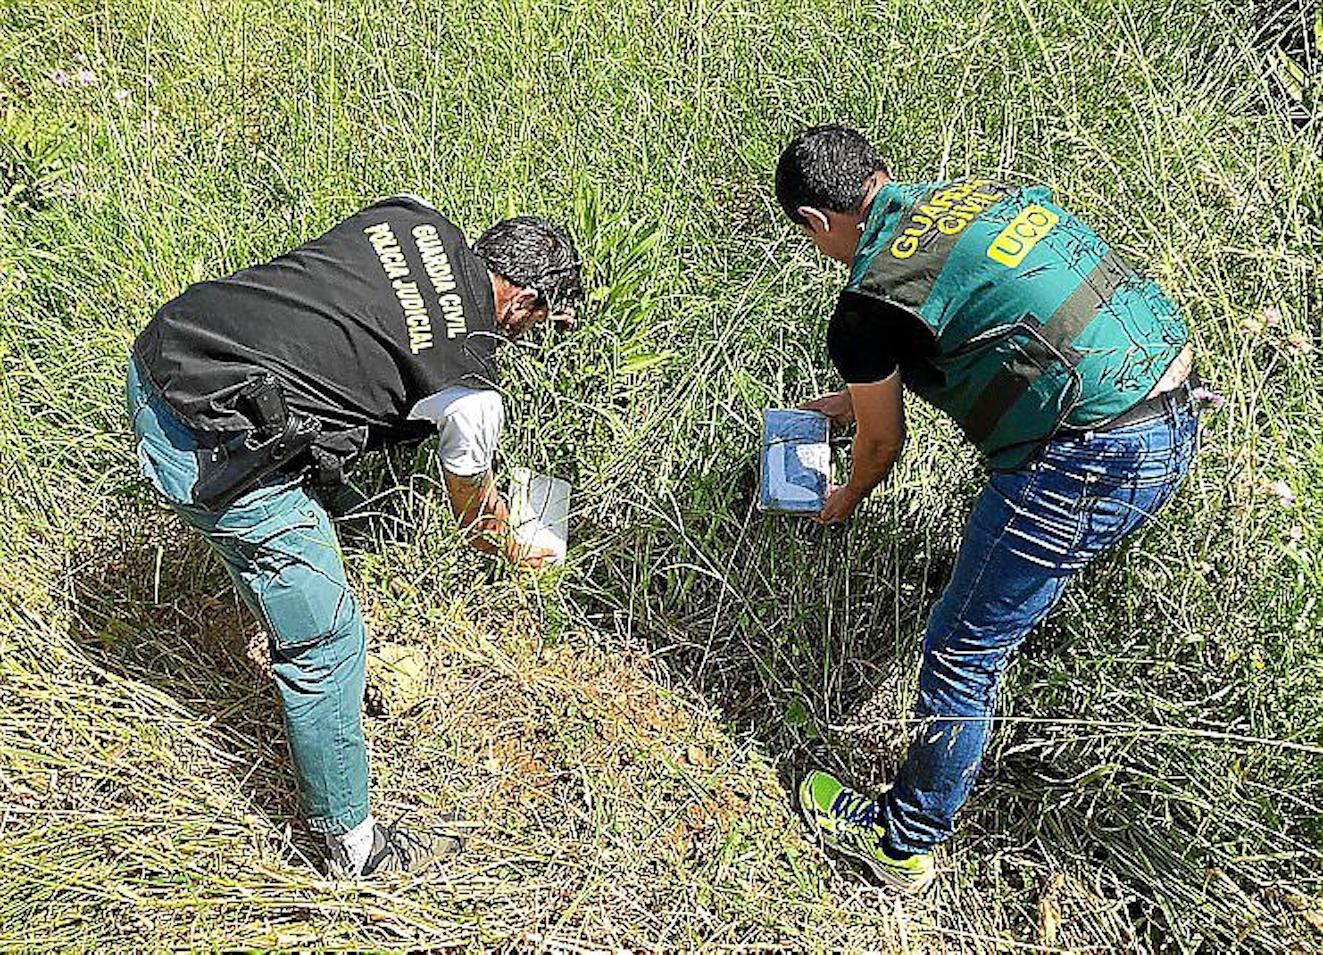 Guardia Civil Officers uncover drugs in field.